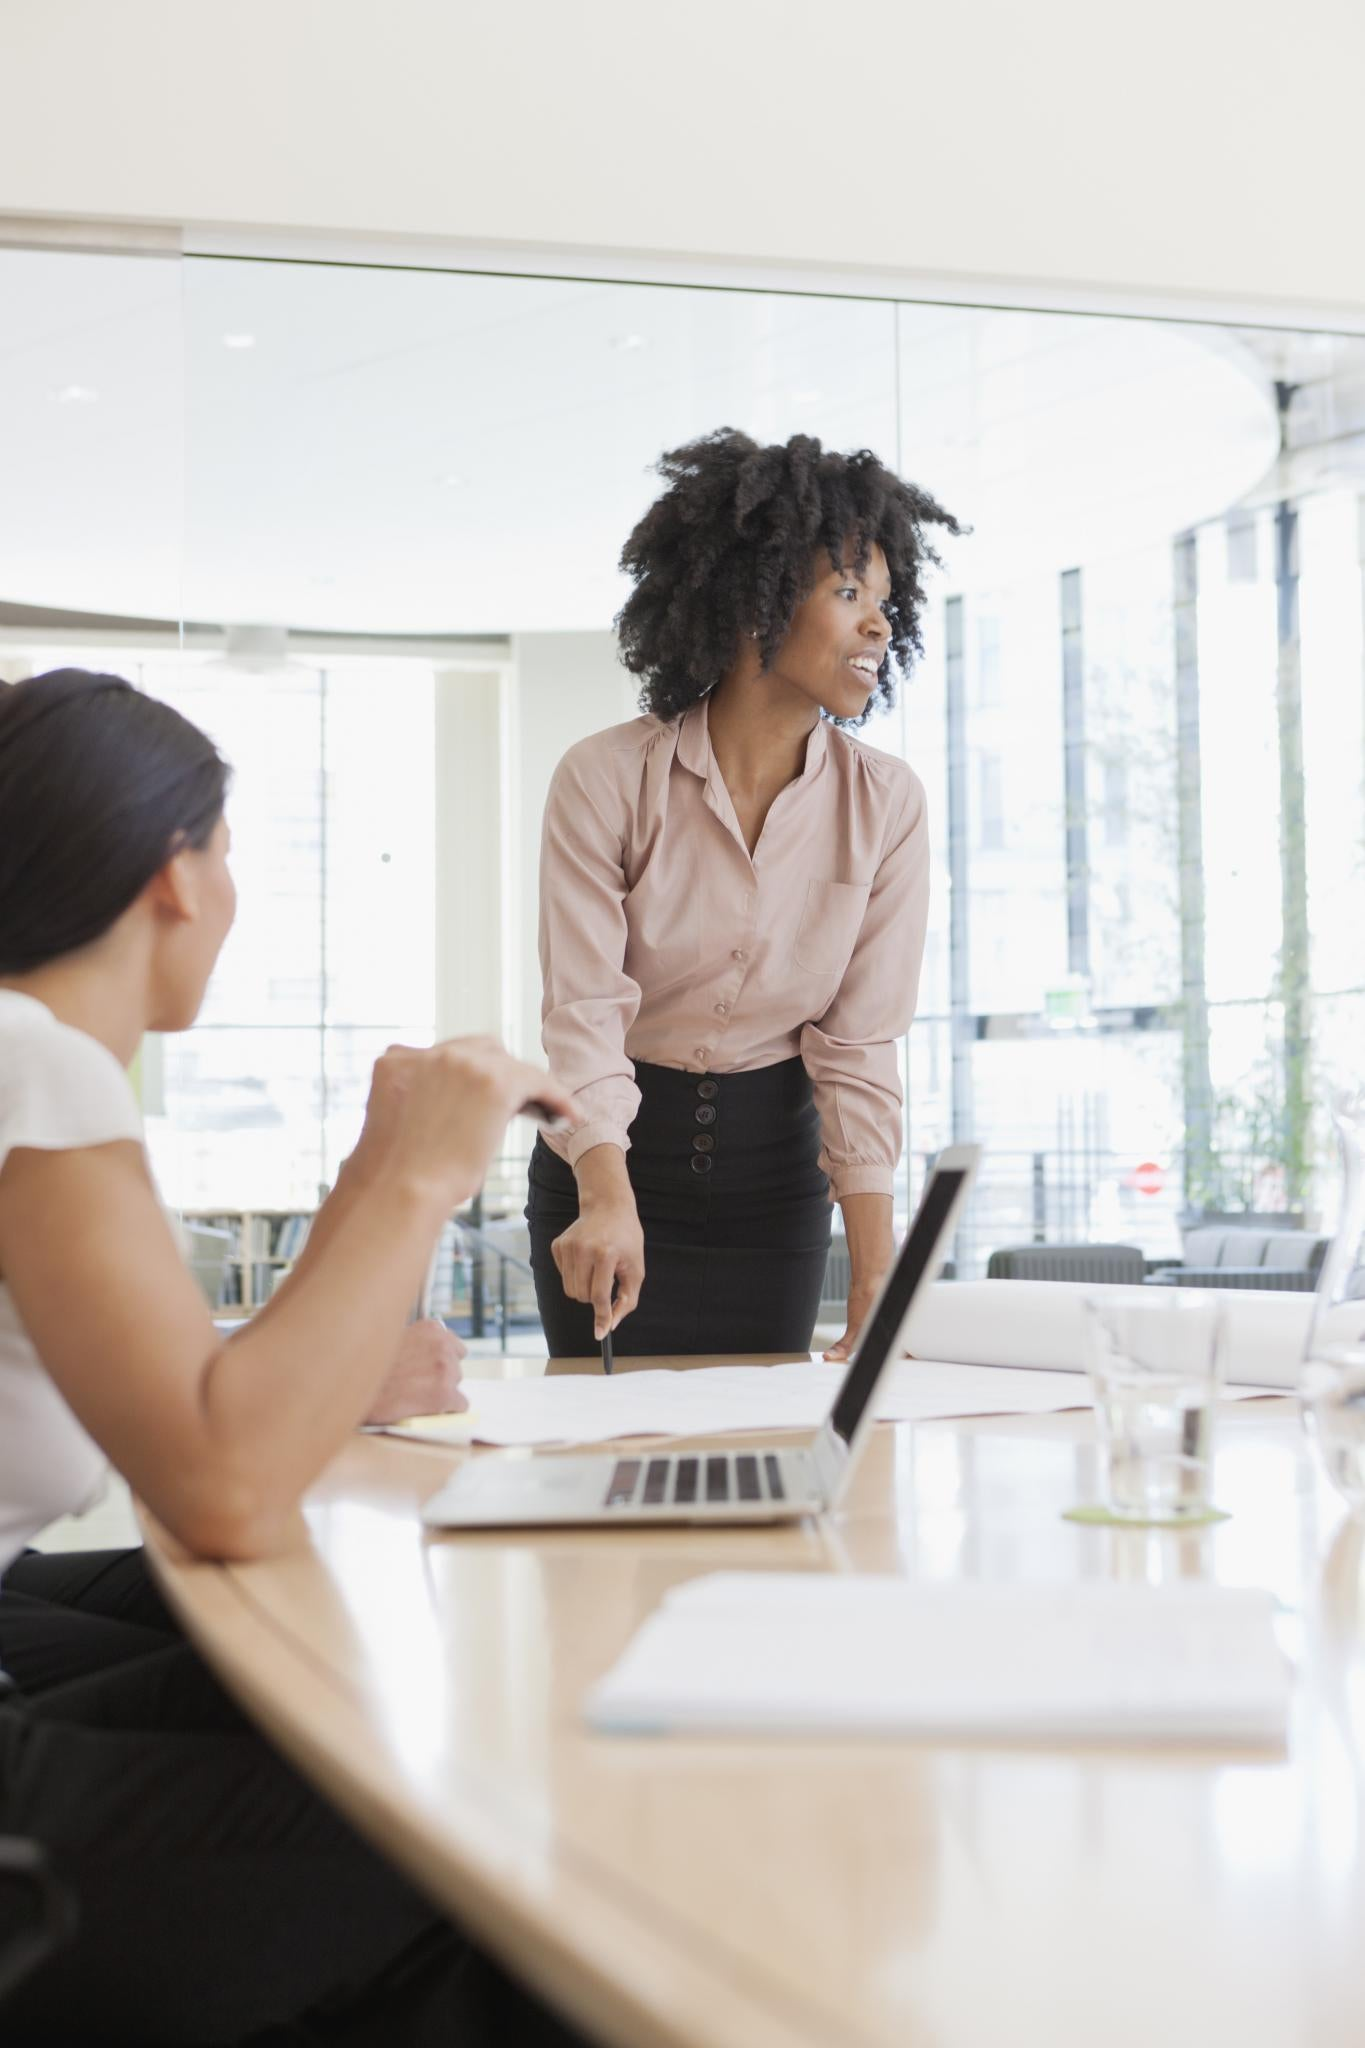 The Black Woman's Career Playbook: The Rules of Engagement